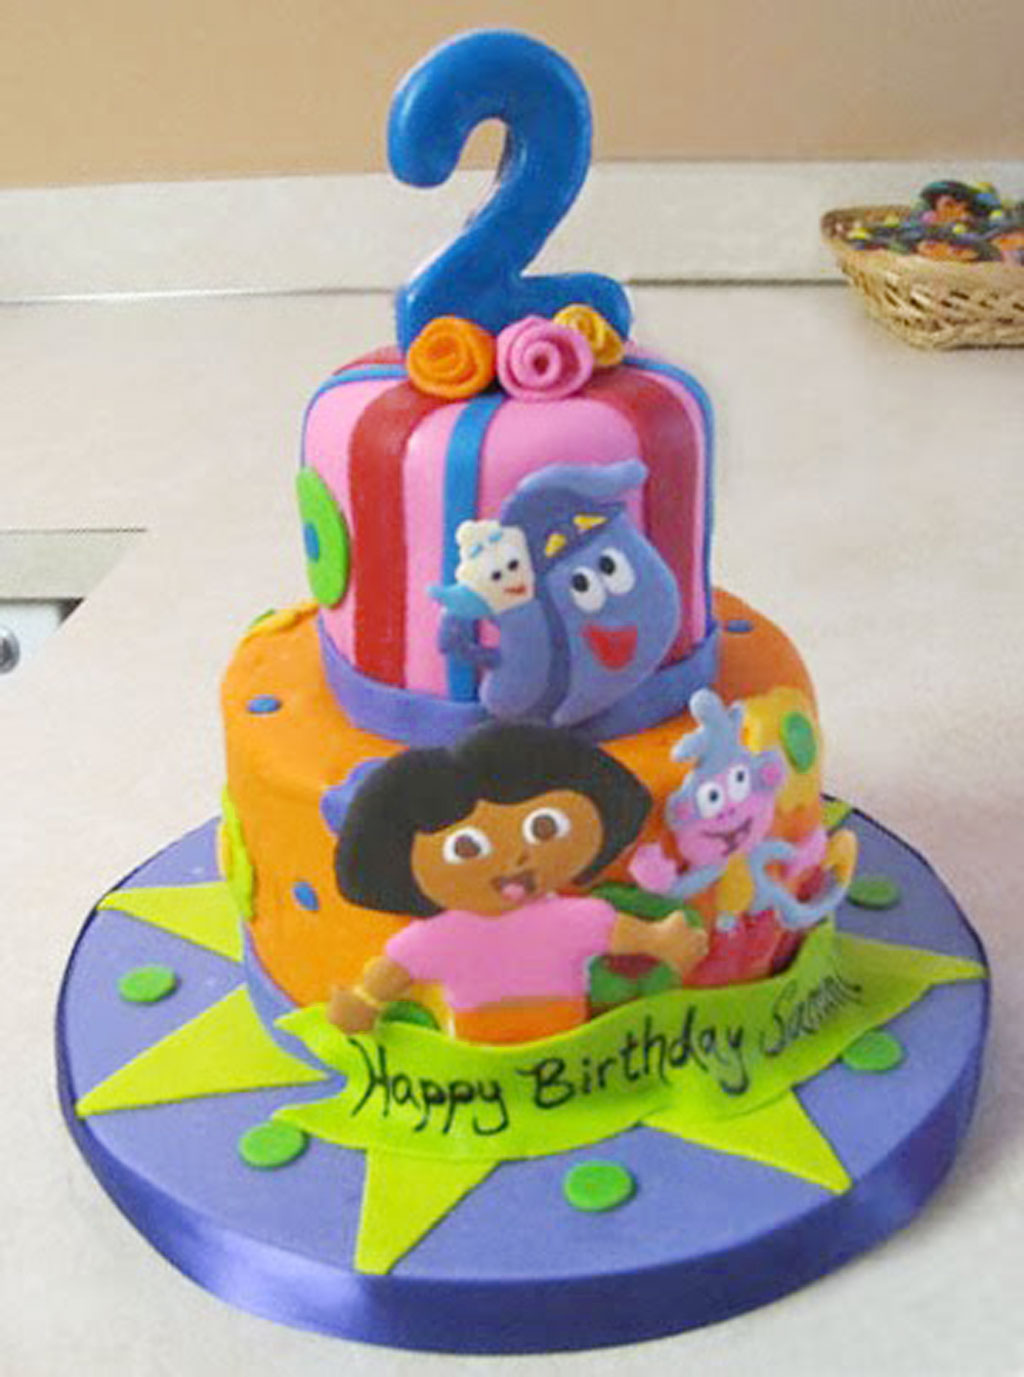 Dora Birthday Cake Designs Birthday Cake - Cake Ideas by ...